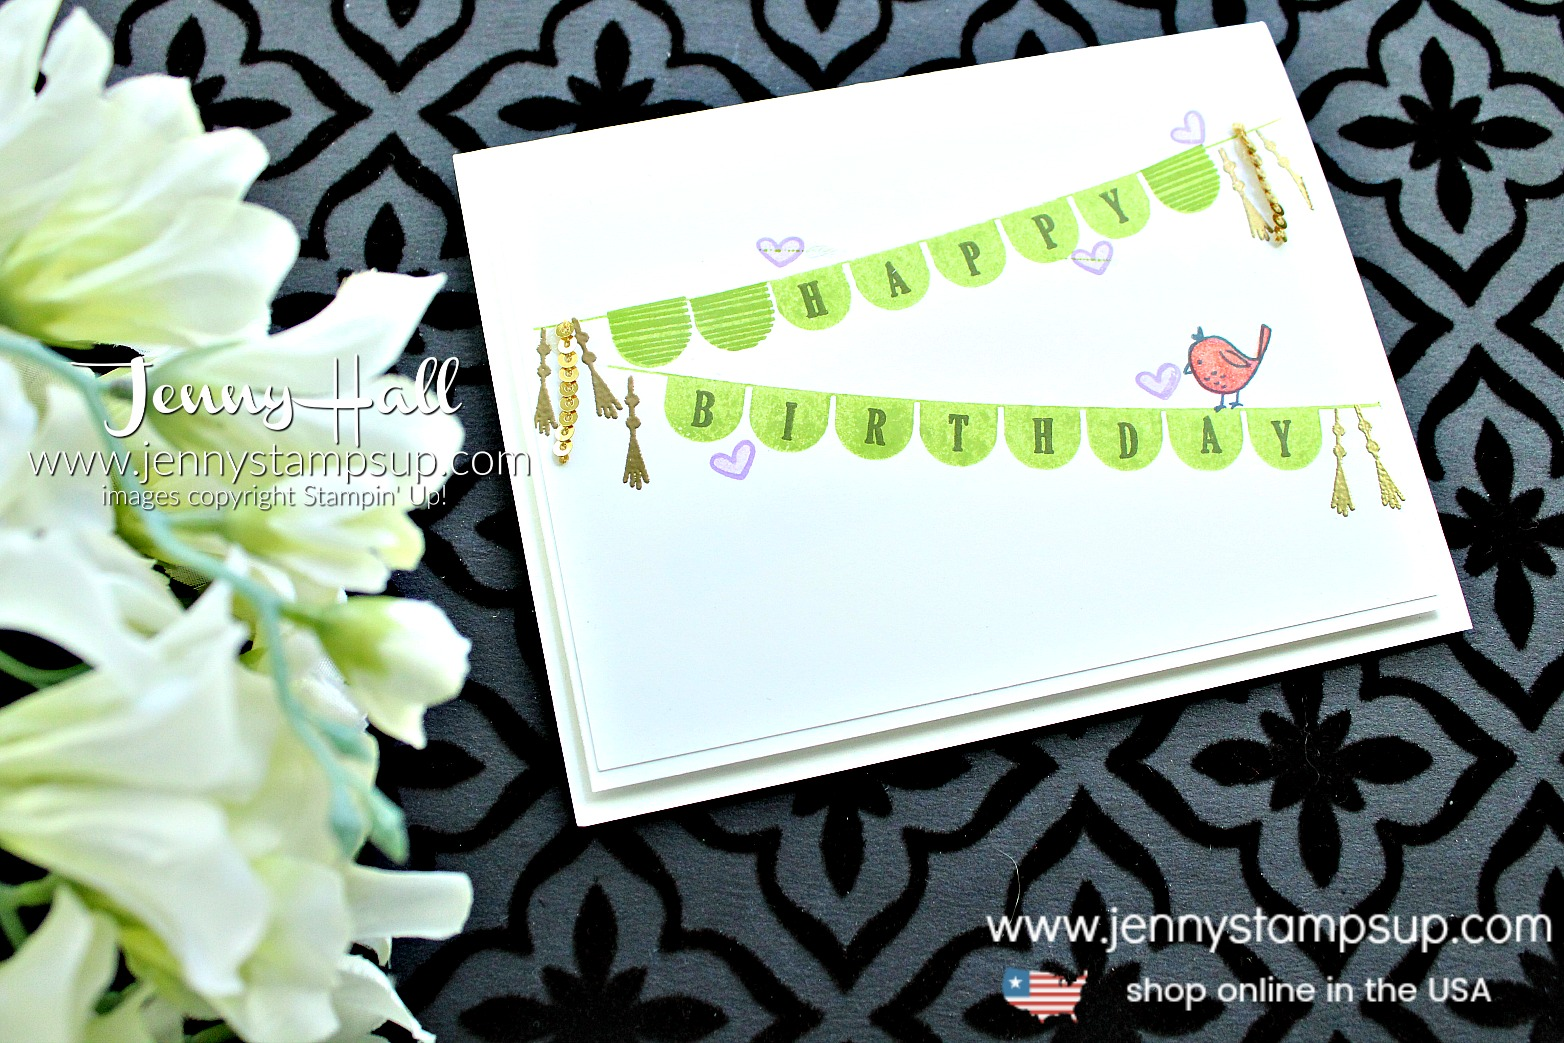 Kelly Kent's Birthday Blog Hop card featuring Pick a Pennant birthday card created by Jenny Hall at www.jennystampsup.com for #cardmaking #blog hop #stampinup #jennyhall #jennyhalldesigns #pickapennantstampset #videotutorial